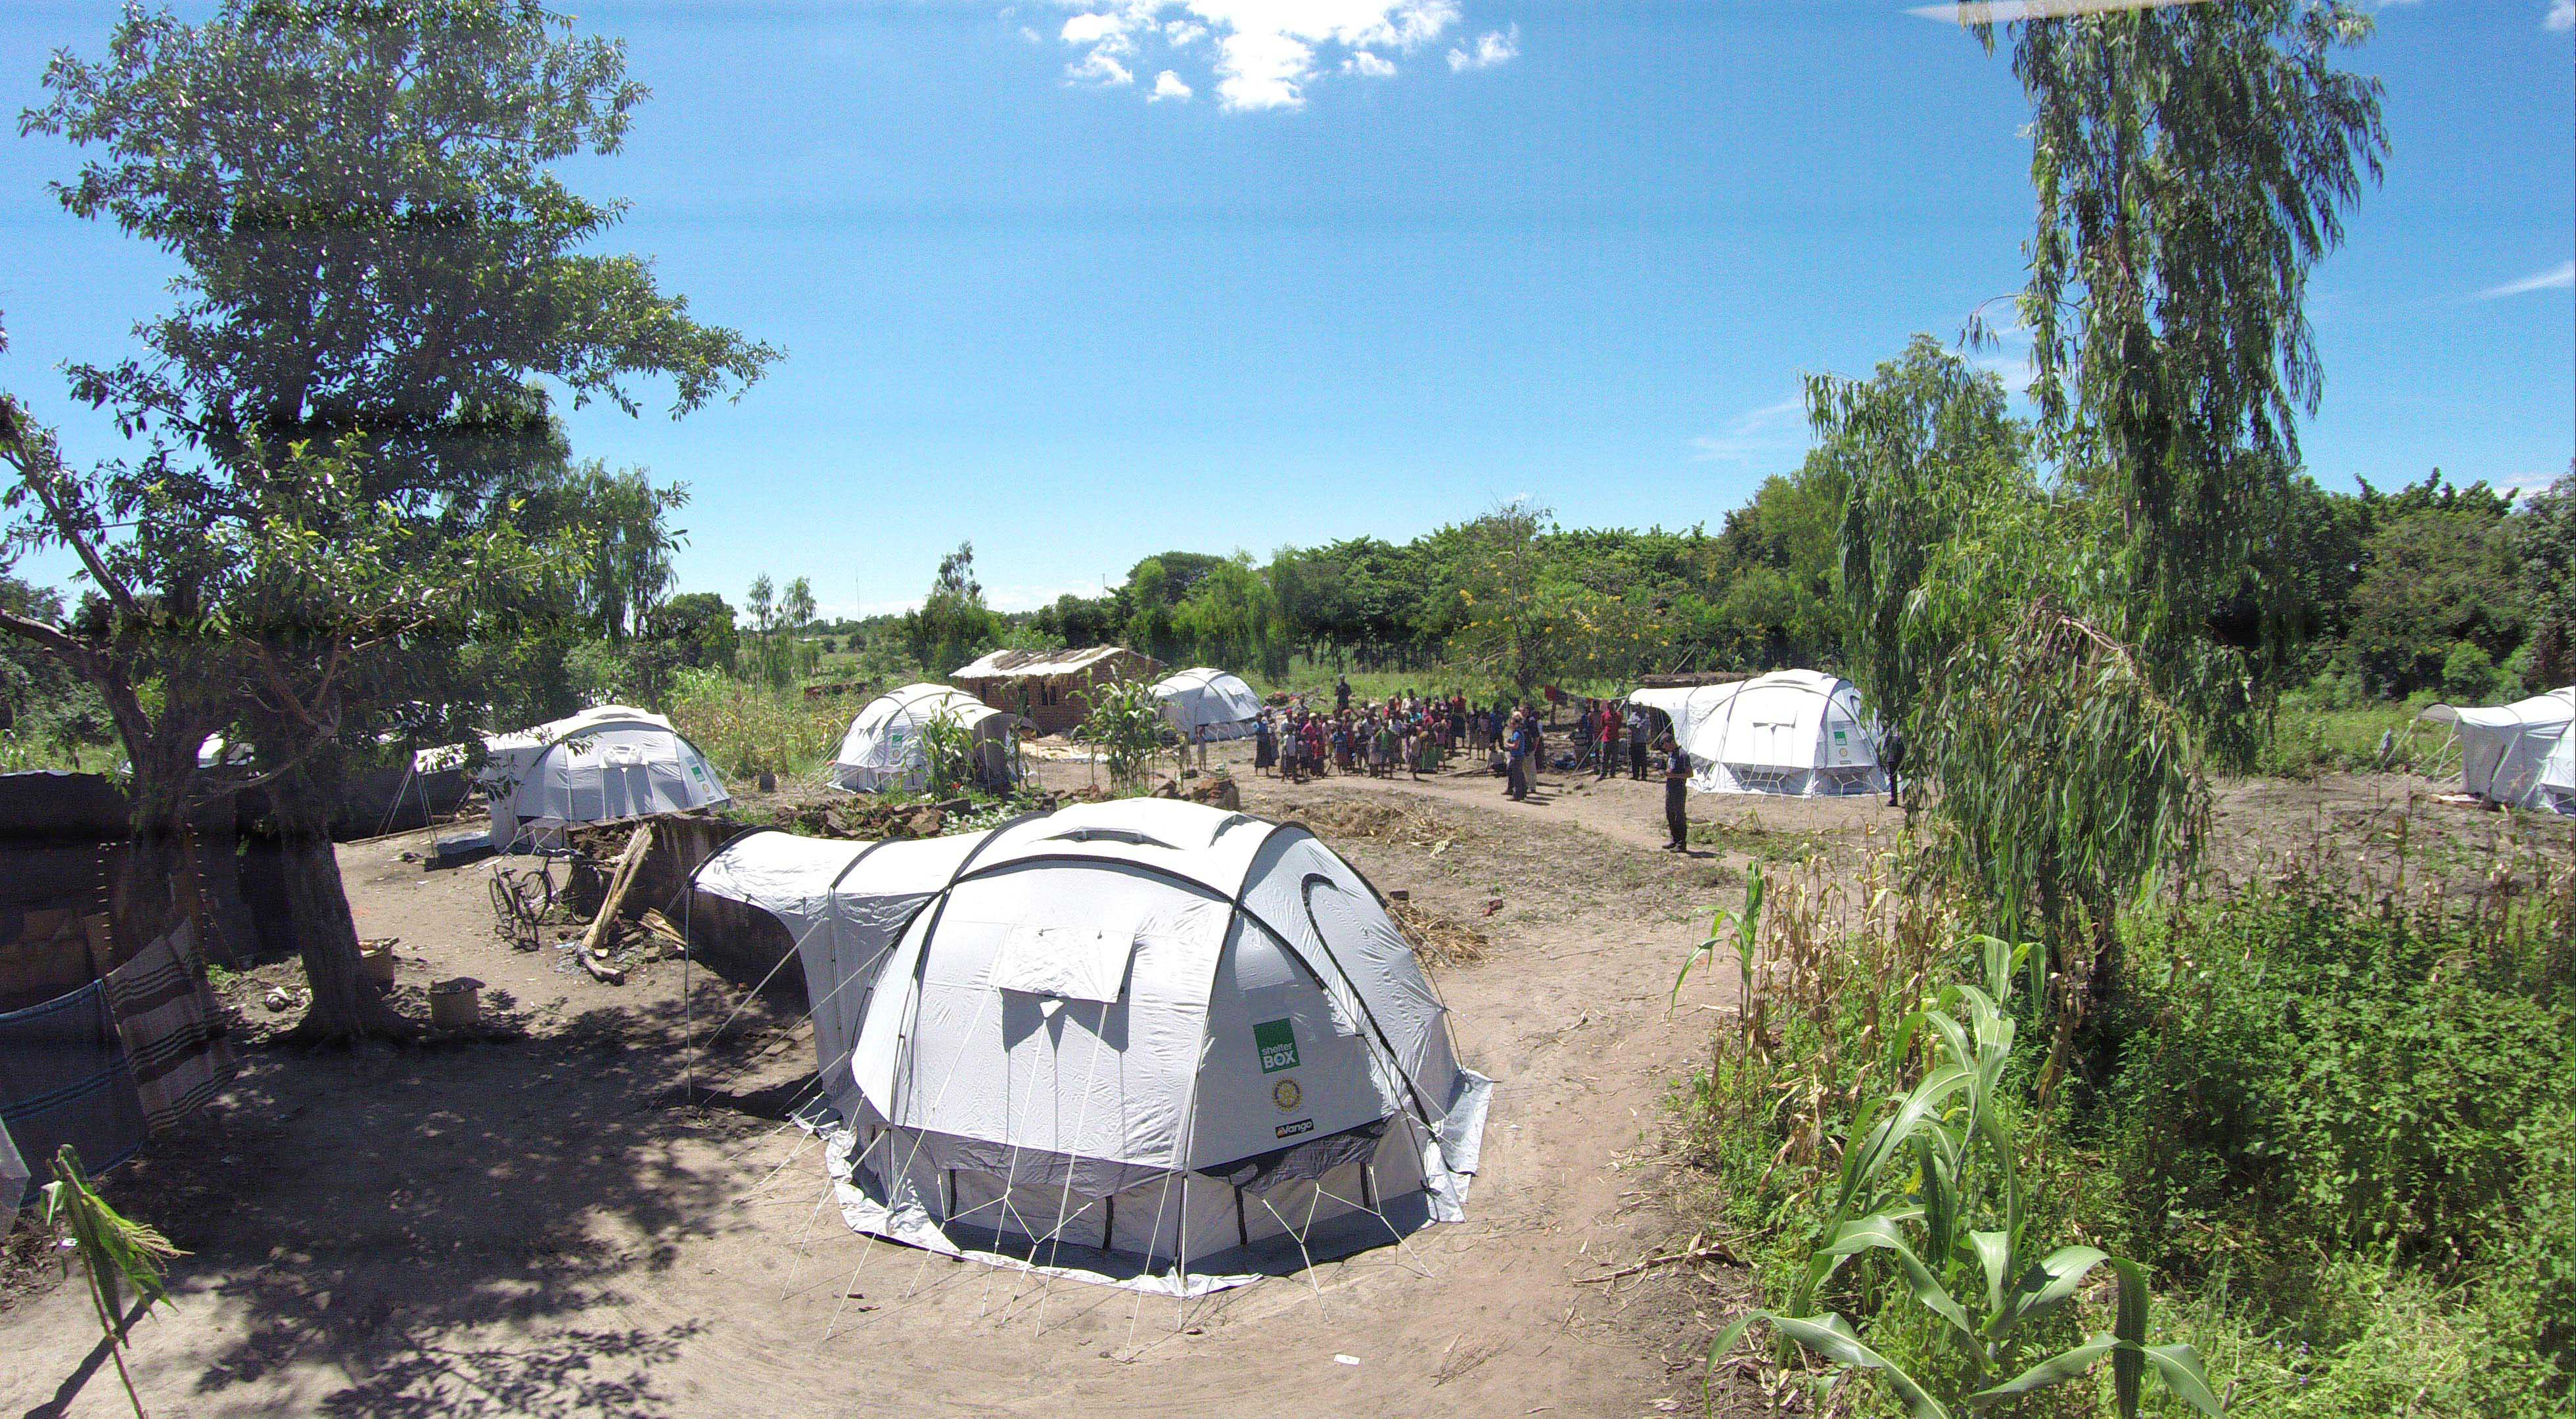 Tents in a field on a bright day in Malawi